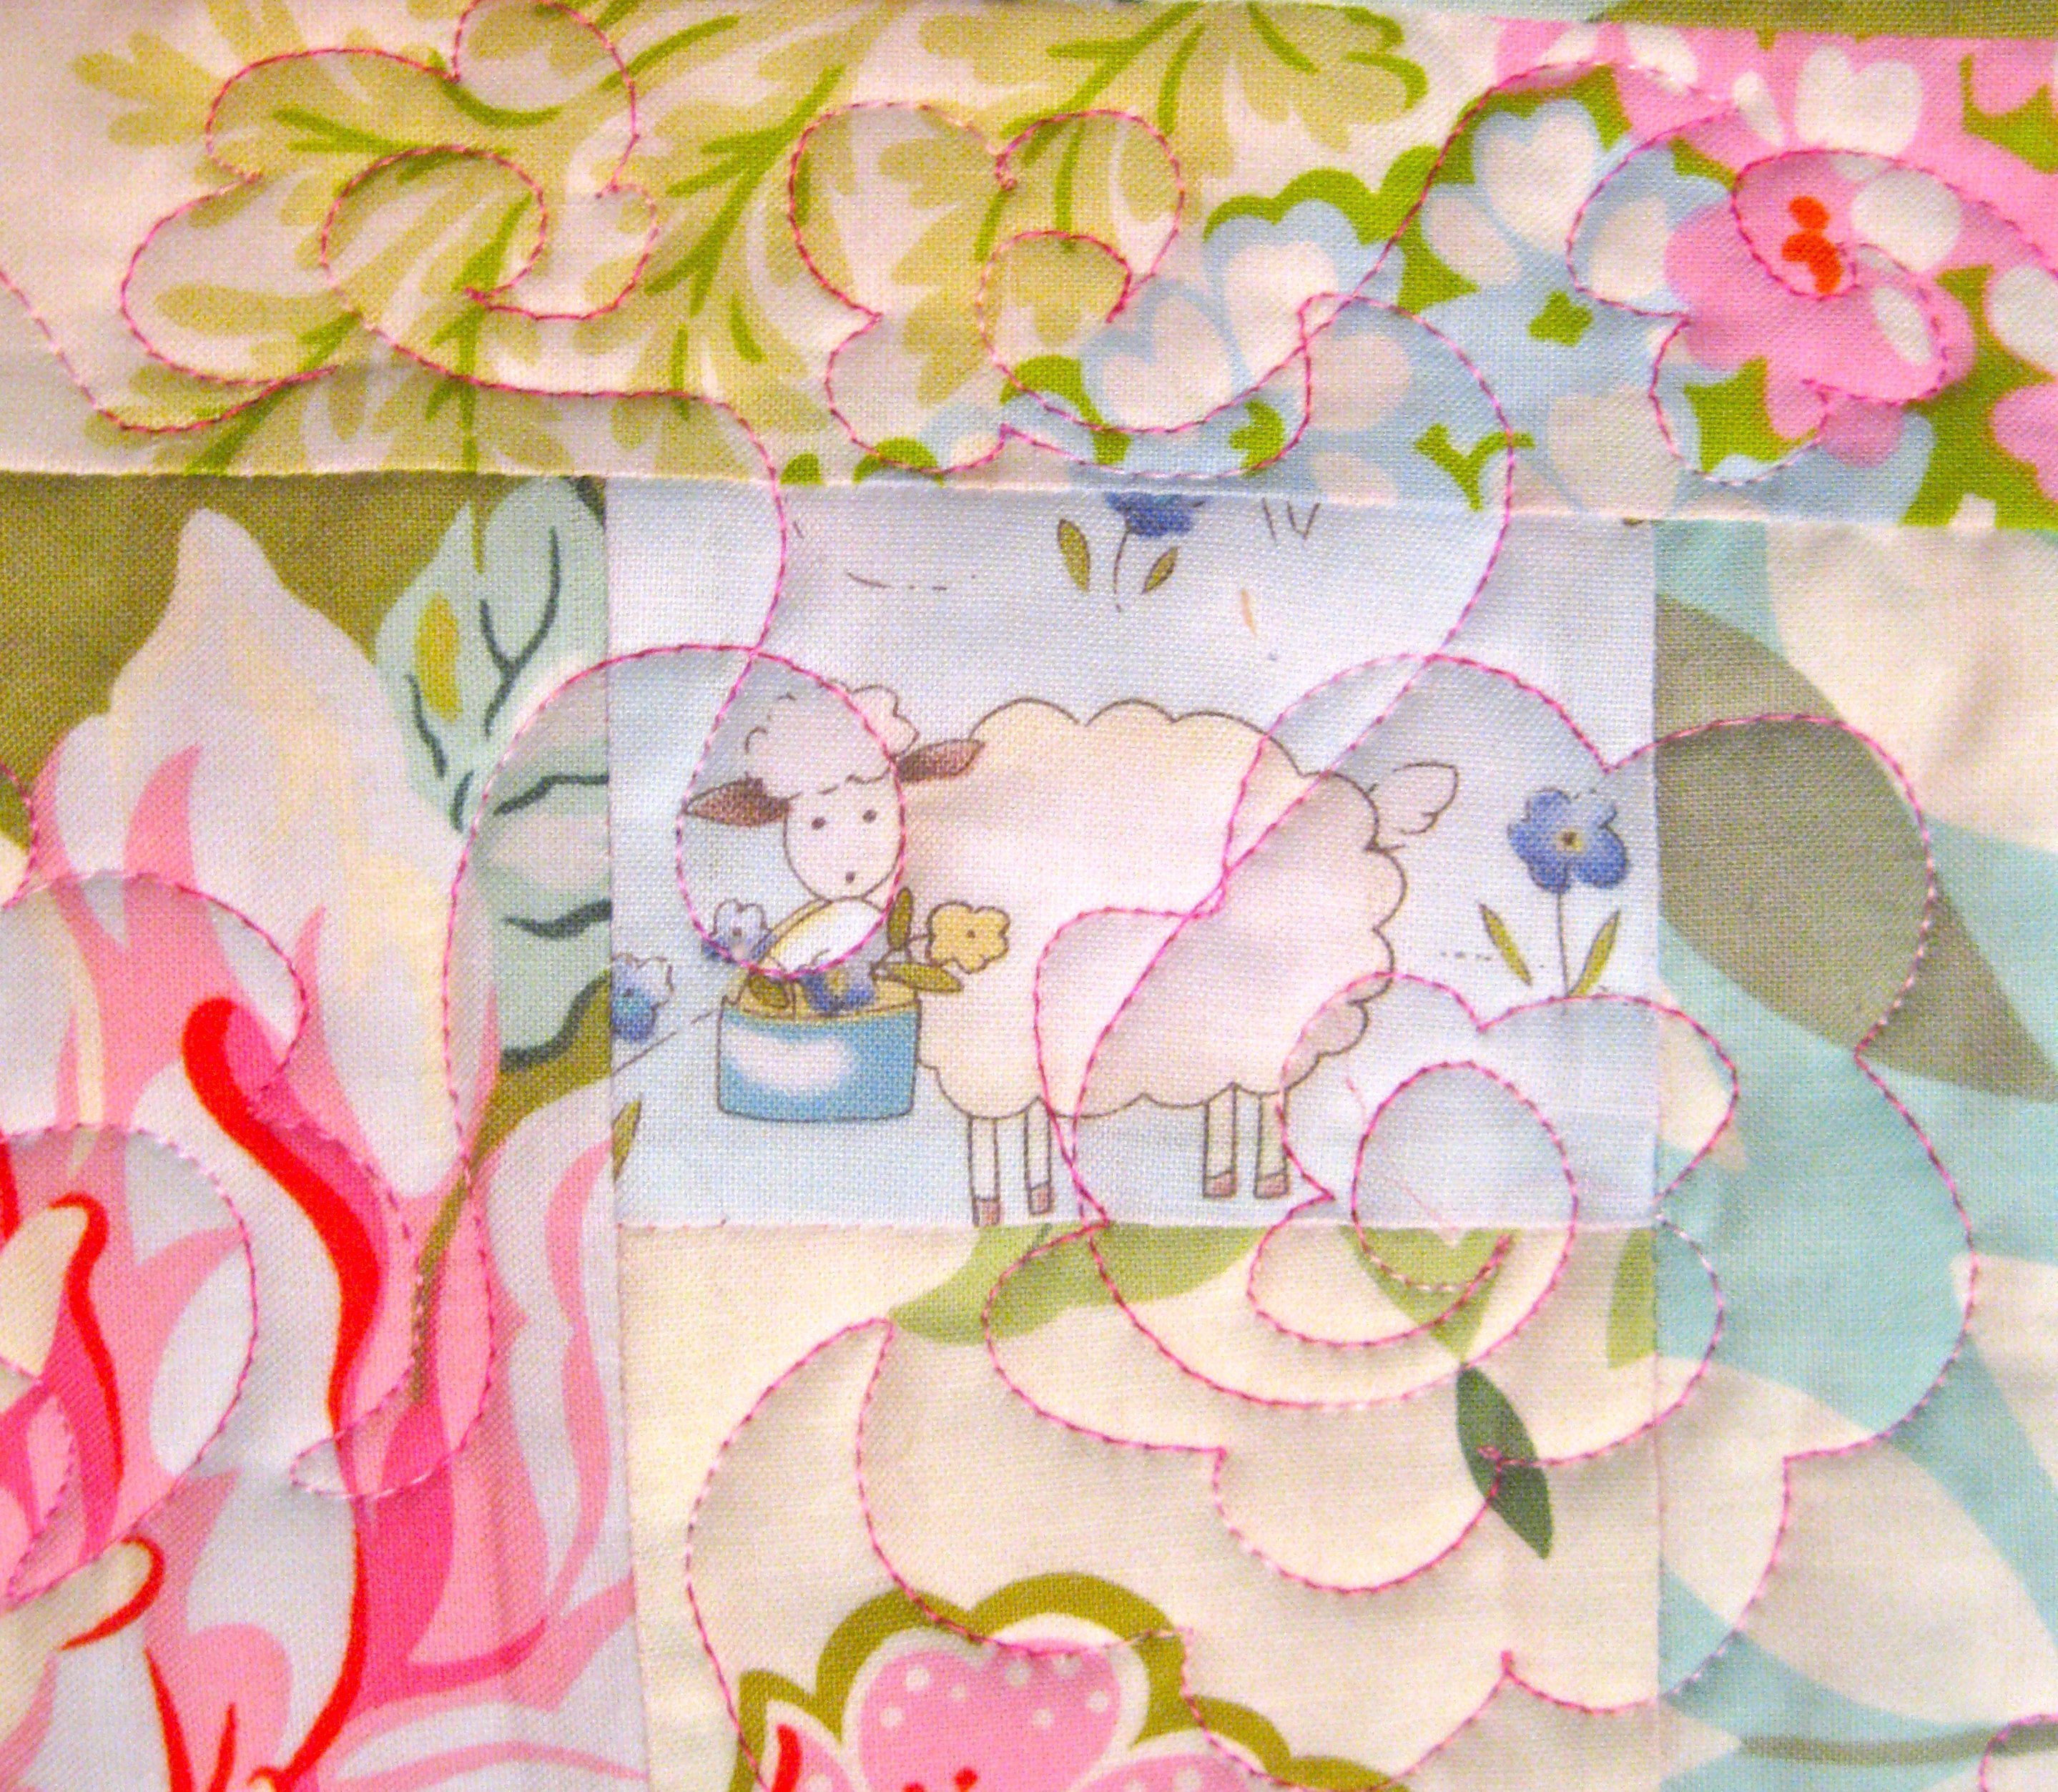 Detail of quilting